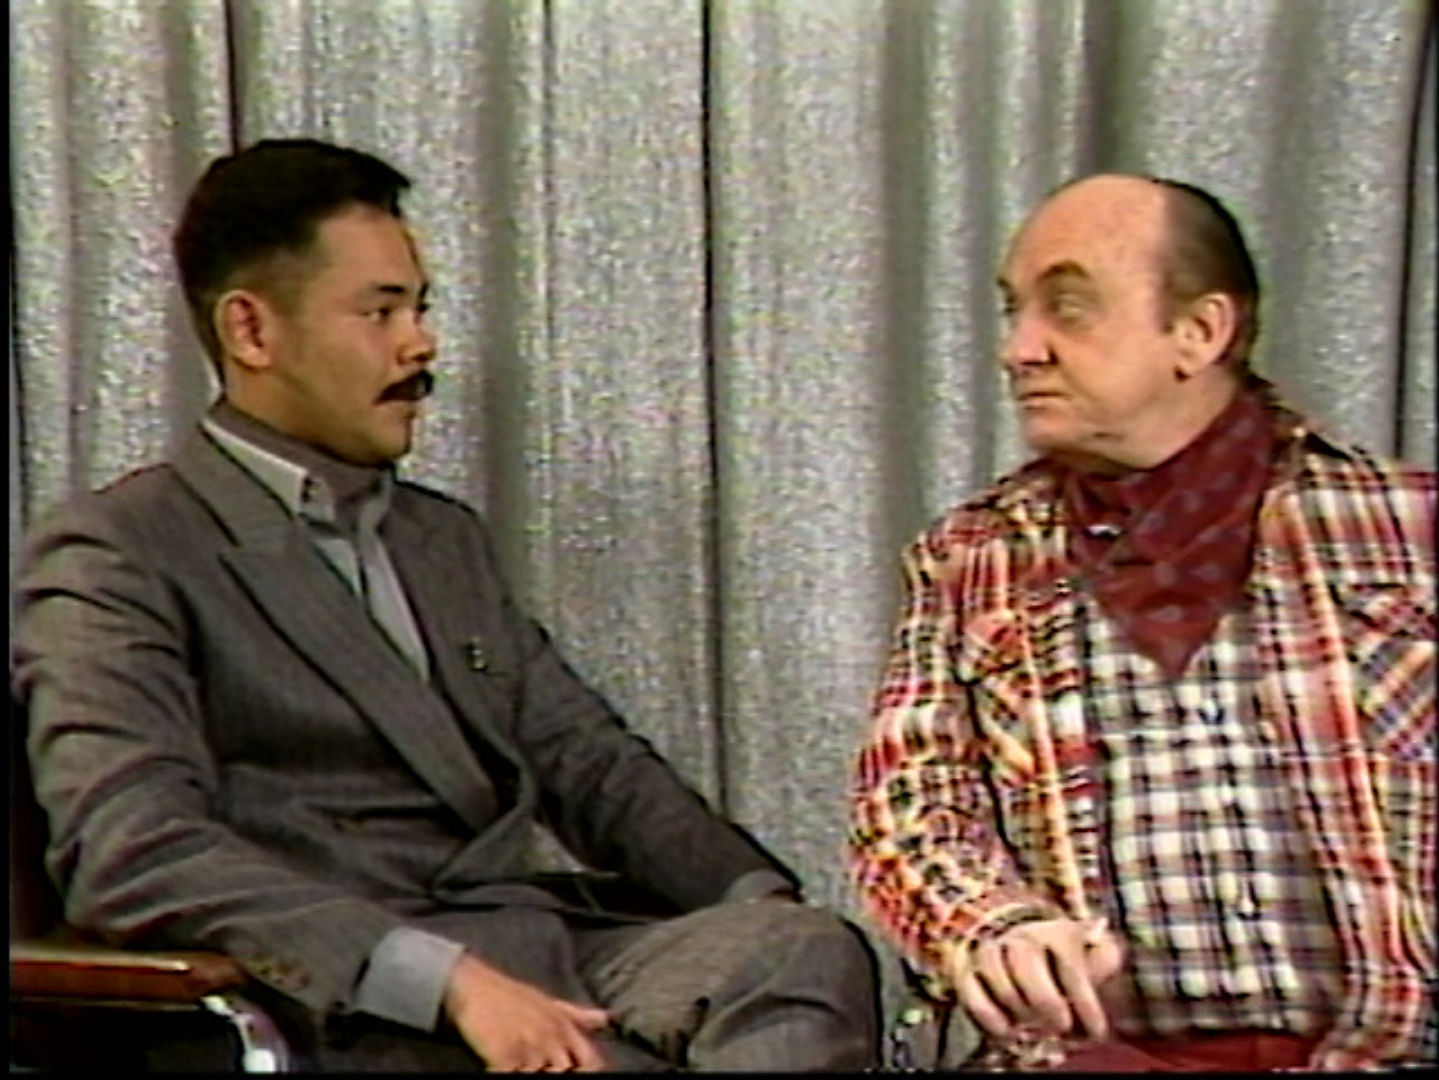 George Sardi interviews fashion designer Gillman Sang. 1985. U-matic tape. Still from the item Gay Morning America, Season 2, Show 15.